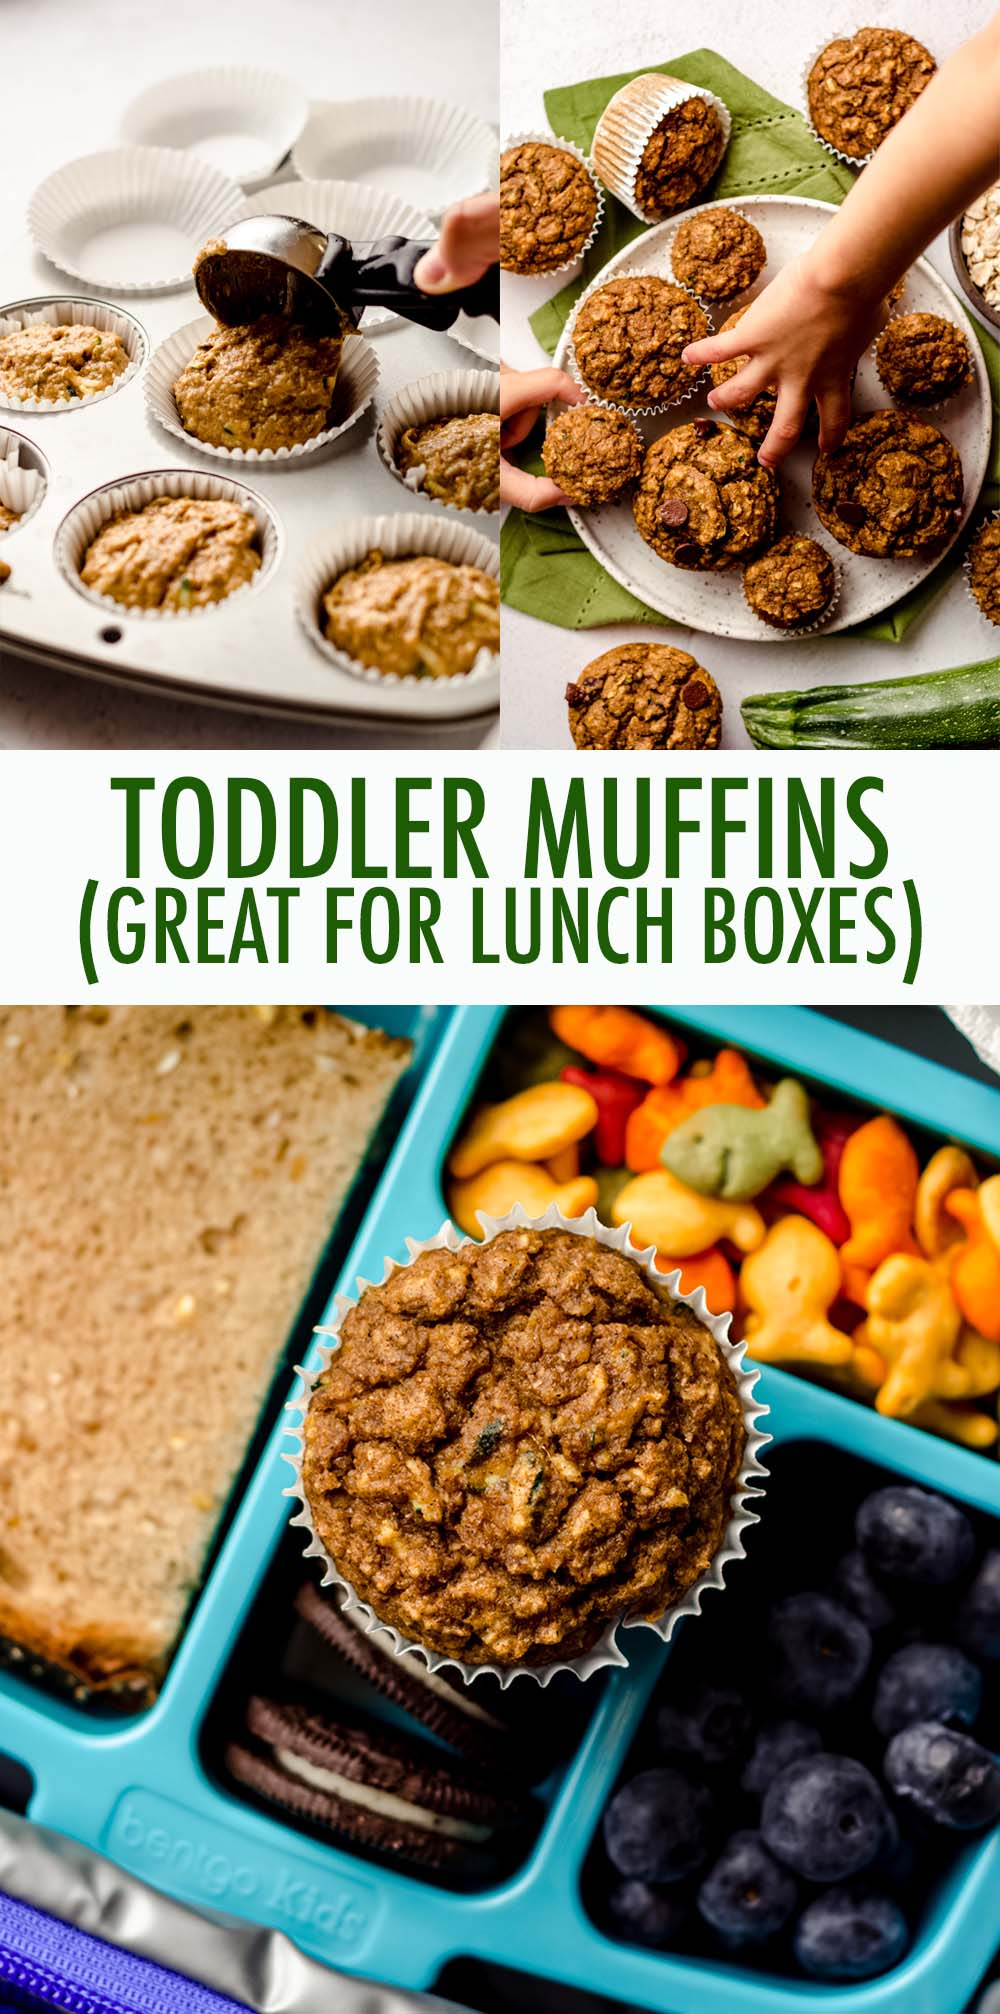 Whole wheat muffins made with shredded zucchini and pureéd pumpkin, sweetened with mashed bananas, applesauce, and minimal sugar. Suitable for toddlers, children, kids, big kids, and adults!